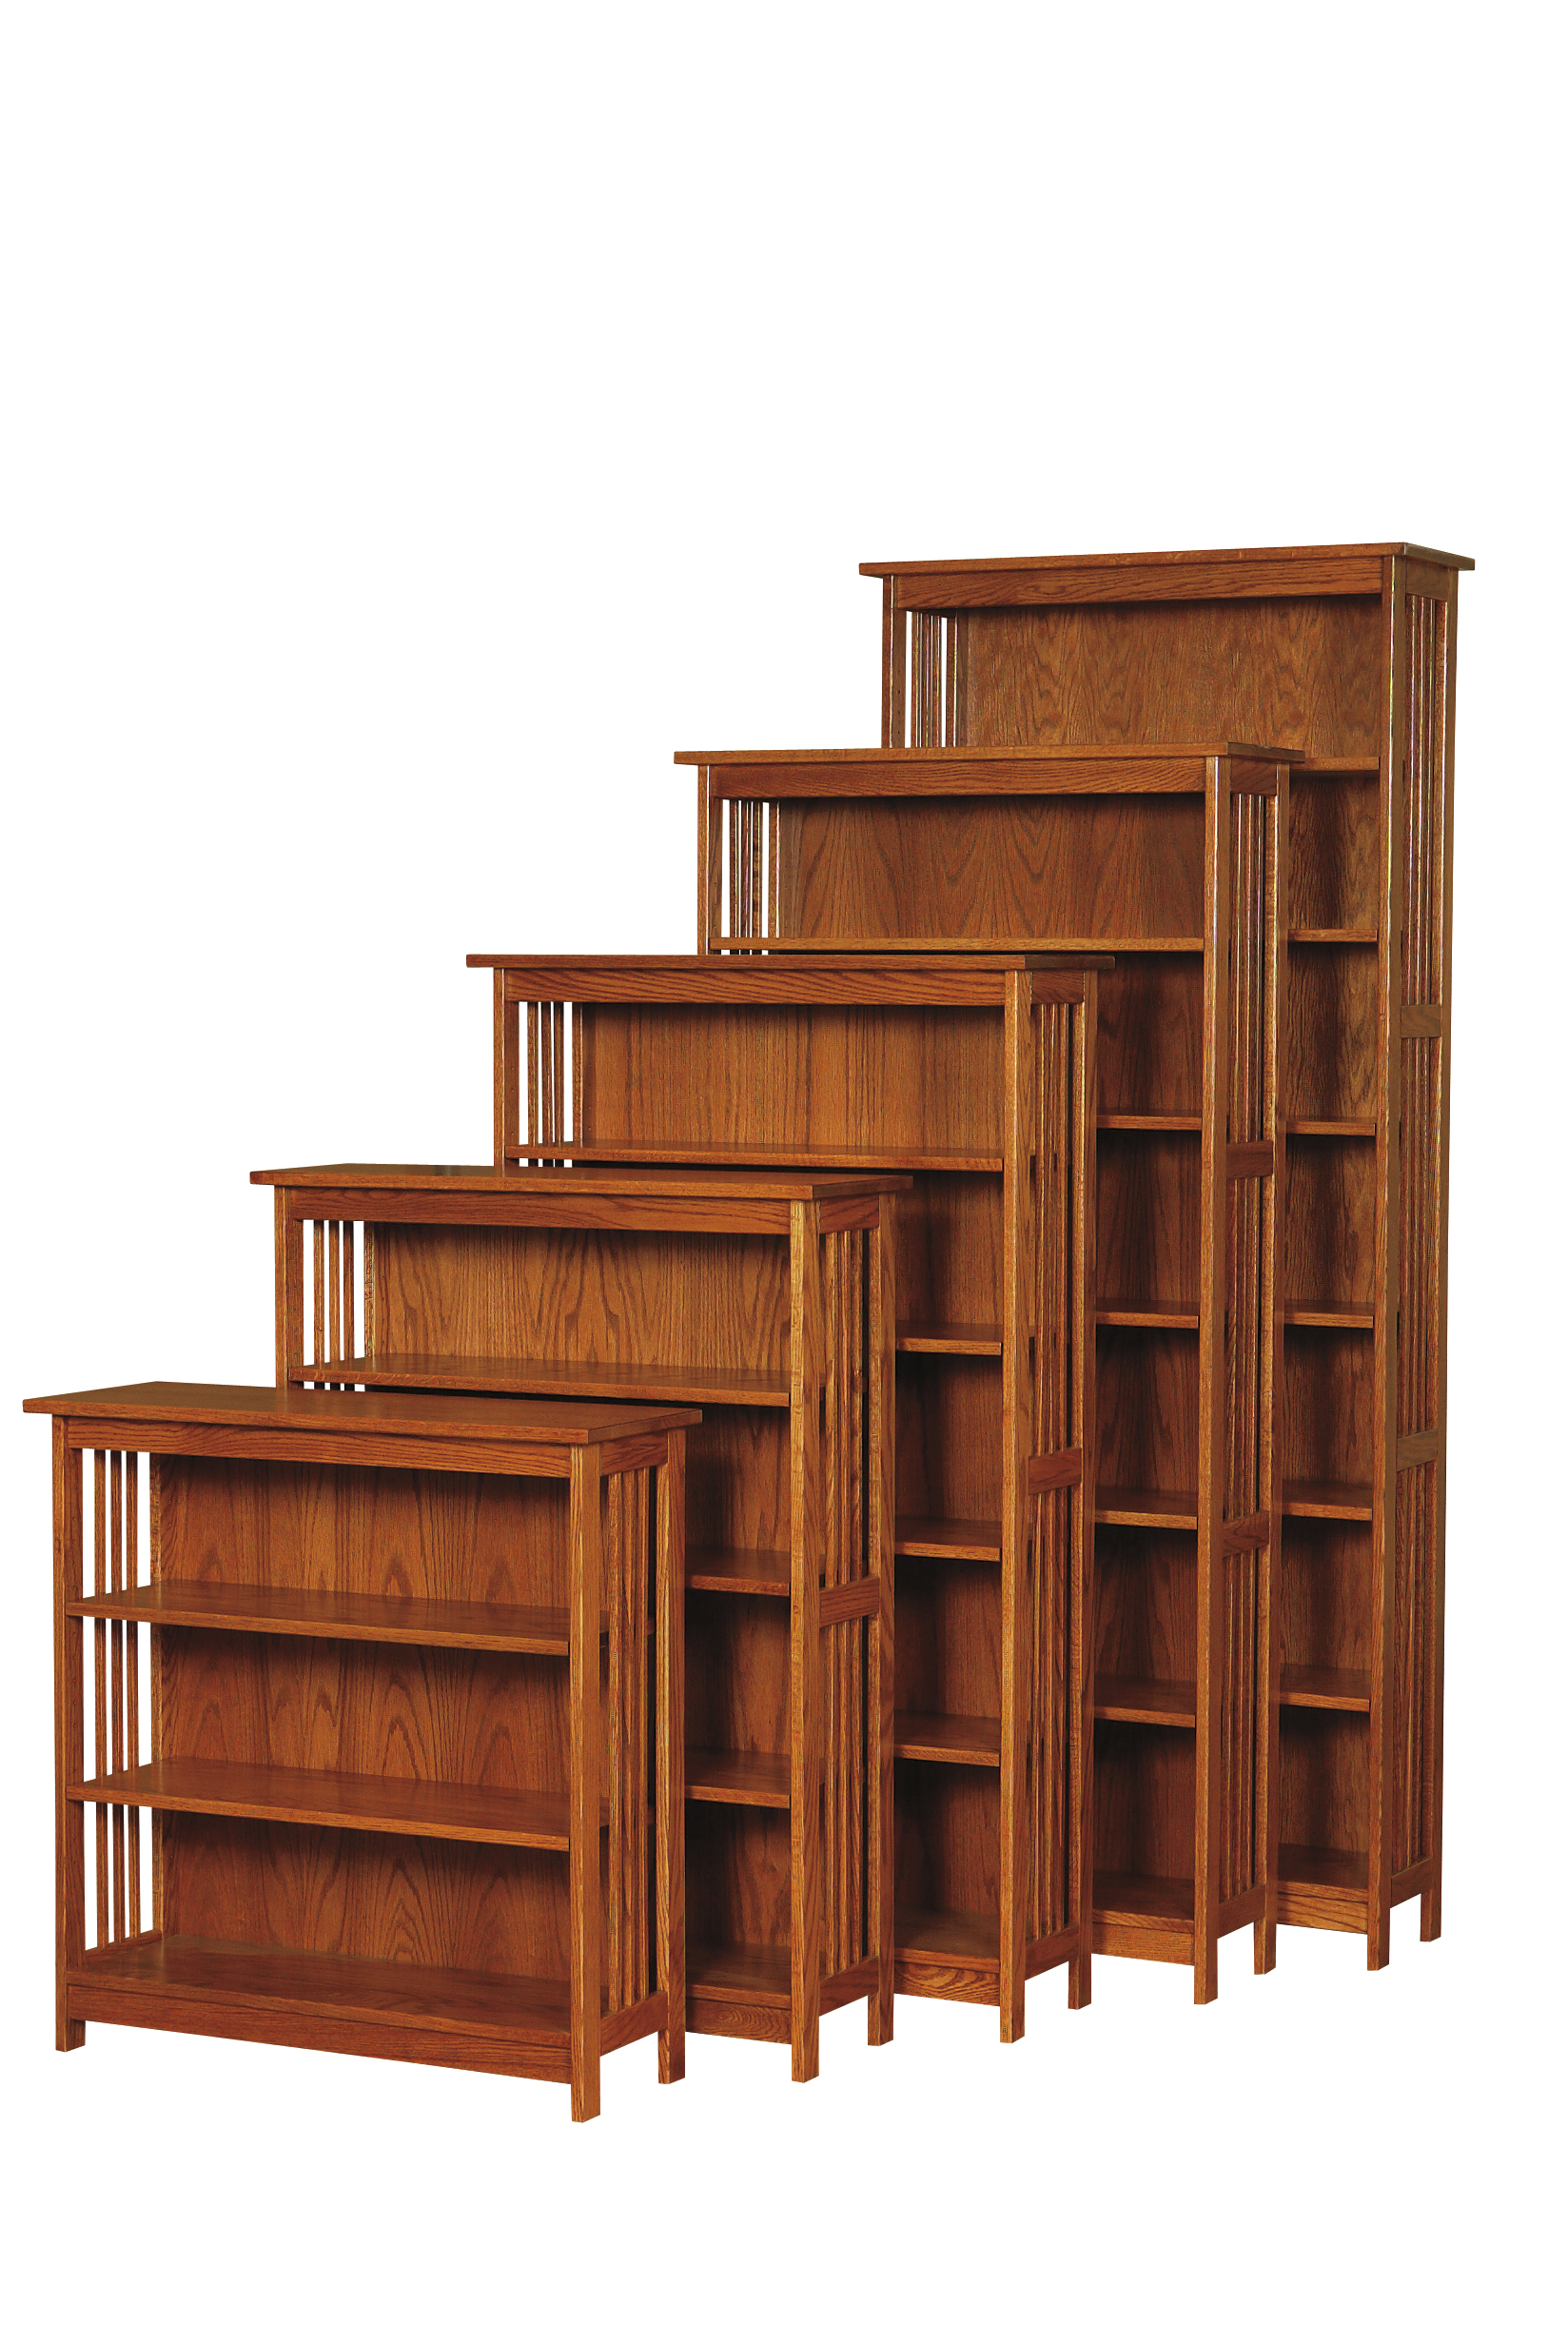 30W Country Mission Bookcase Amish Furniture